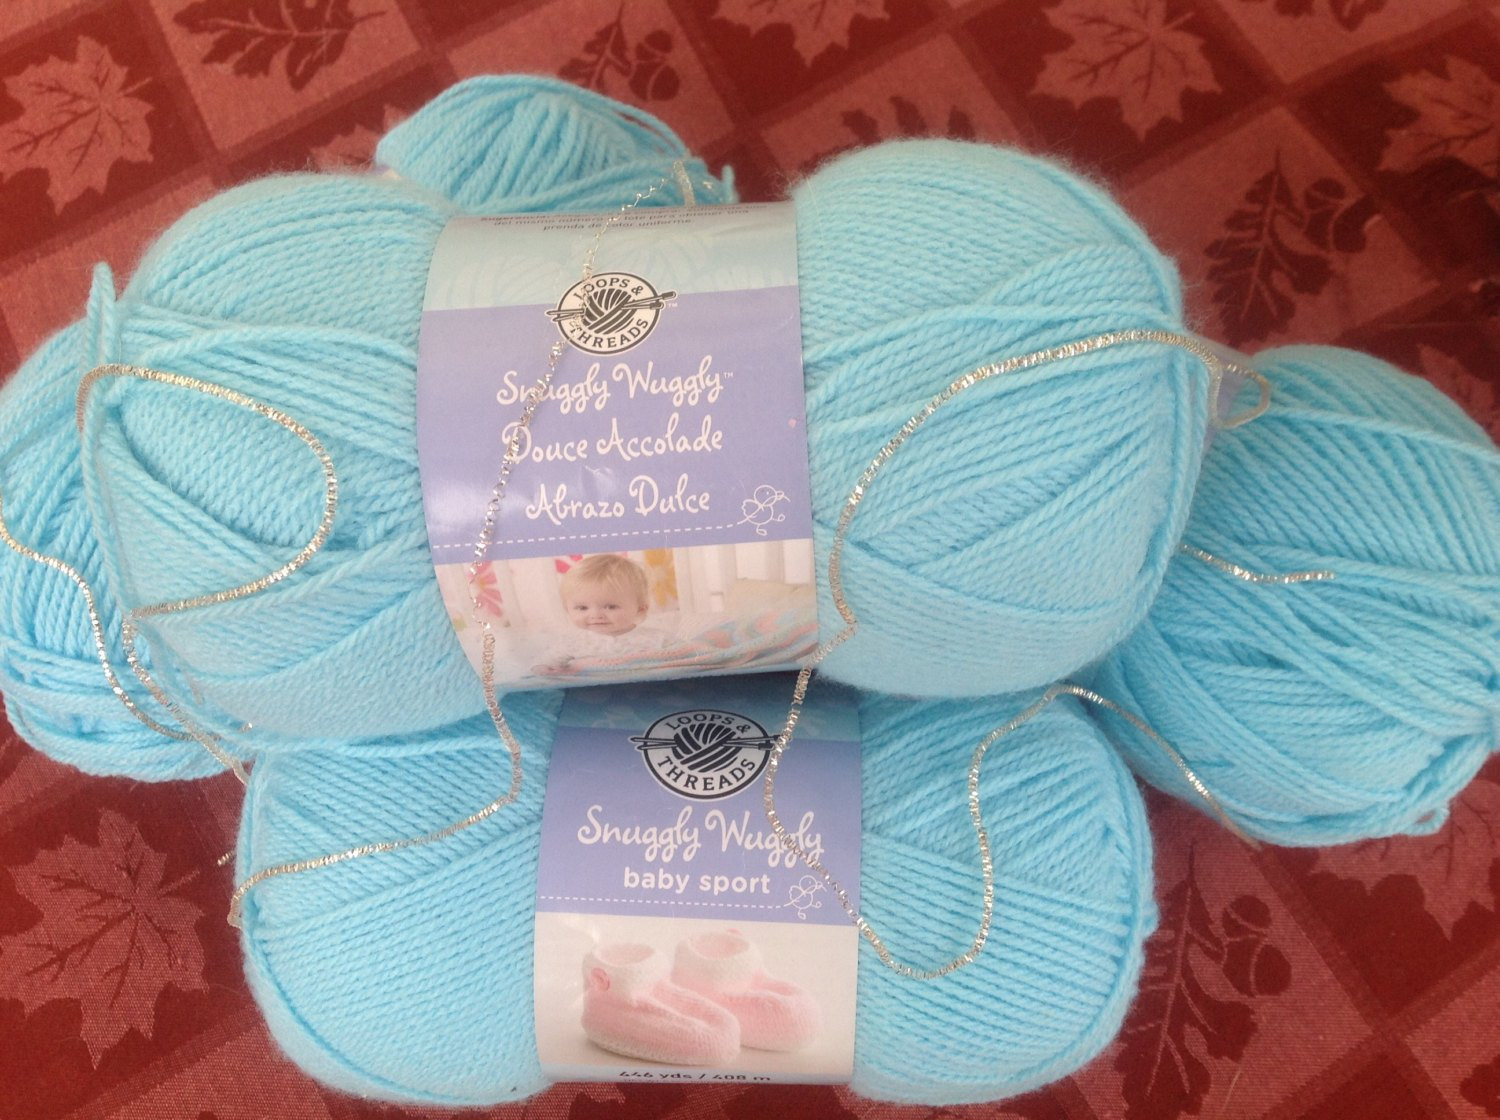 Awesome 4 Loops & Threads Snuggly Wuggly Baby Sport by Artposh On Etsy Snuggly Wuggly Yarn Of Amazing 49 Photos Snuggly Wuggly Yarn